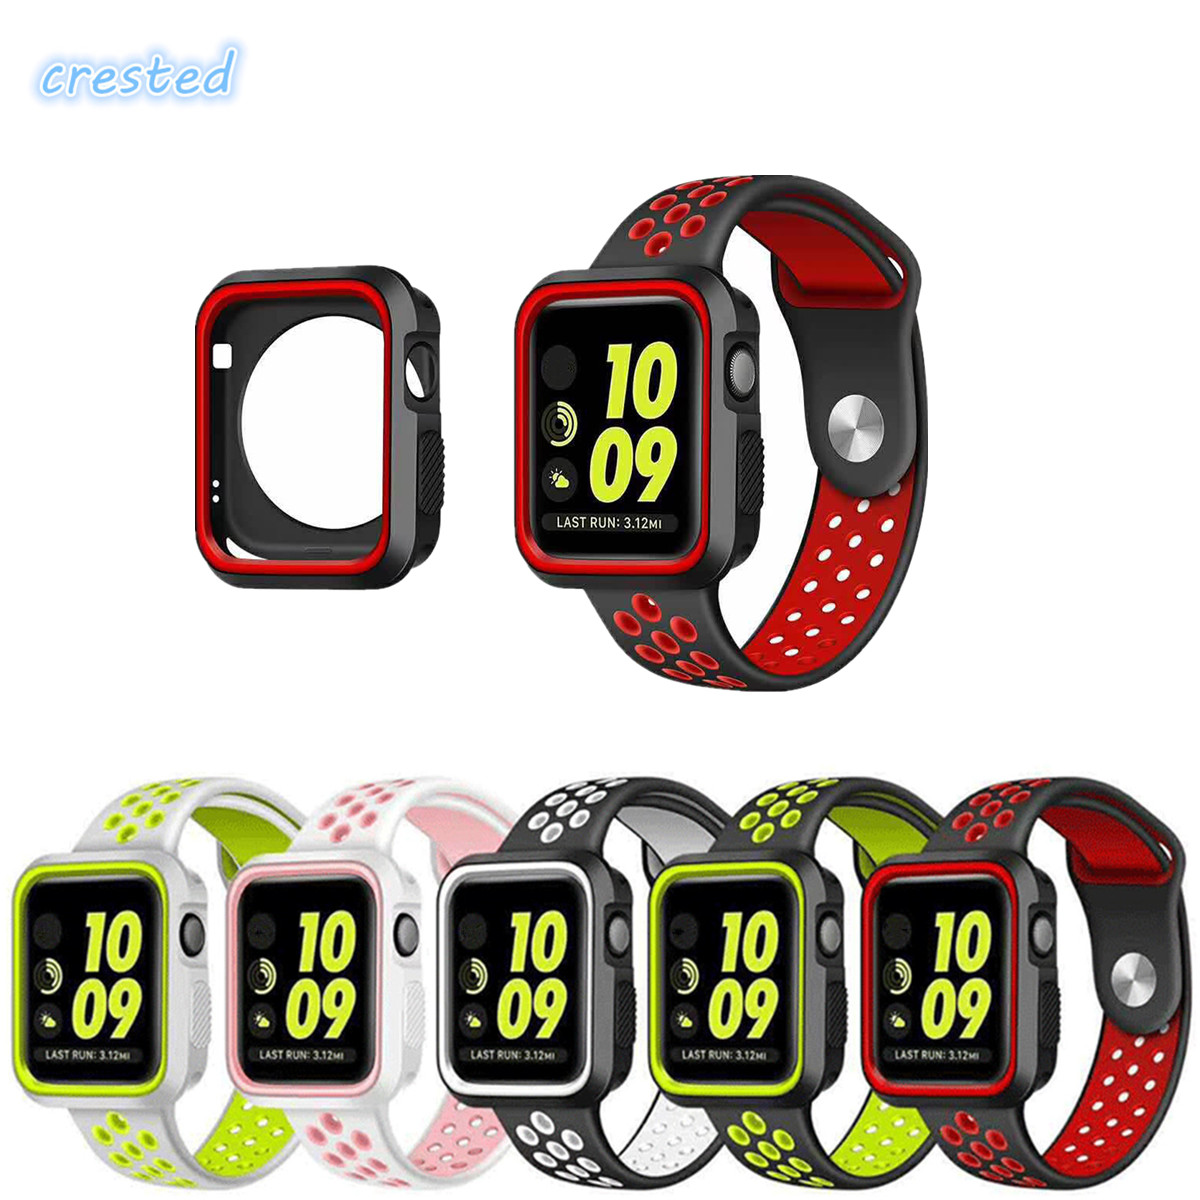 CRESTED sport silicone watch strap for apple watch band 42mm 38mm with full protector case rubber case for iwatch 2/1 38mm eache silicone watch band strap replacement watch band can fit for swatch 17mm 19mm men women